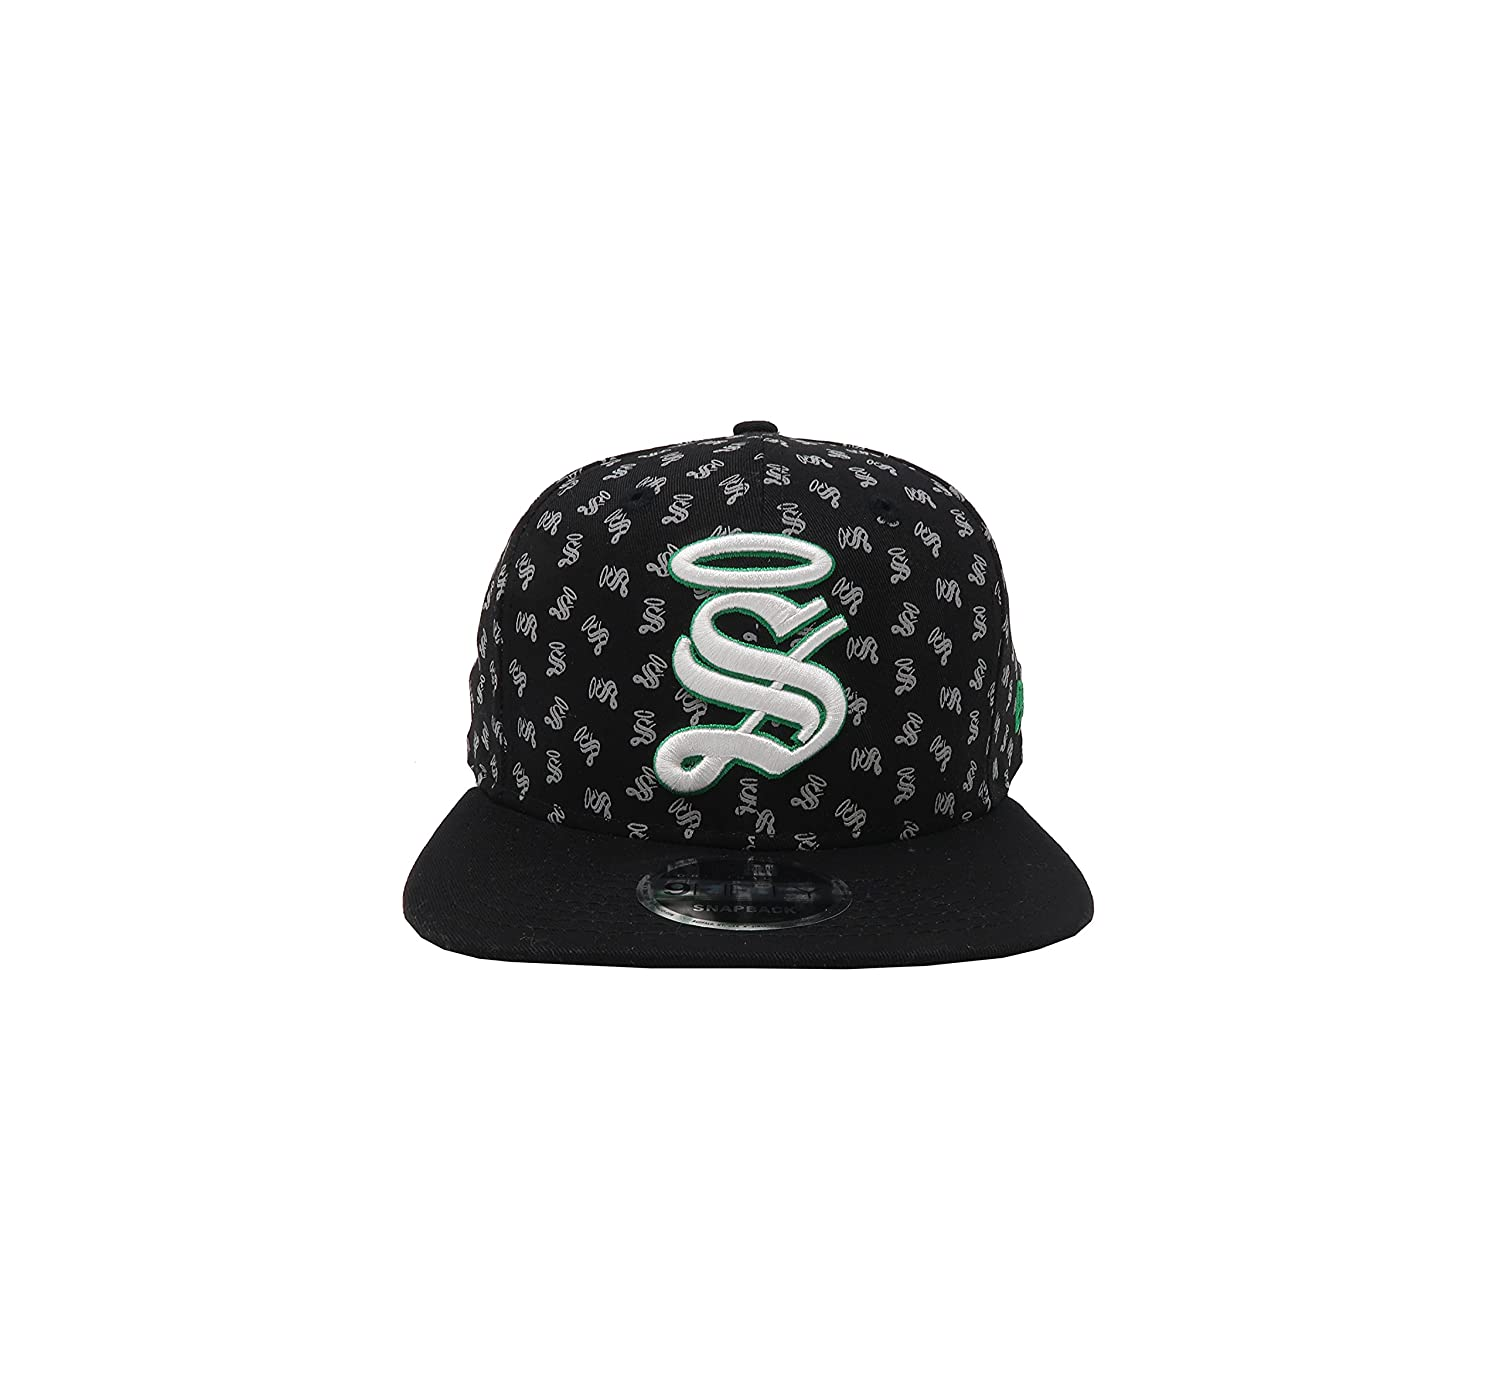 New Era 9Fifty Hat Santos Laguna Soccer Club Liga Mx Black Mini S Logos Snapback at Amazon Mens Clothing store: